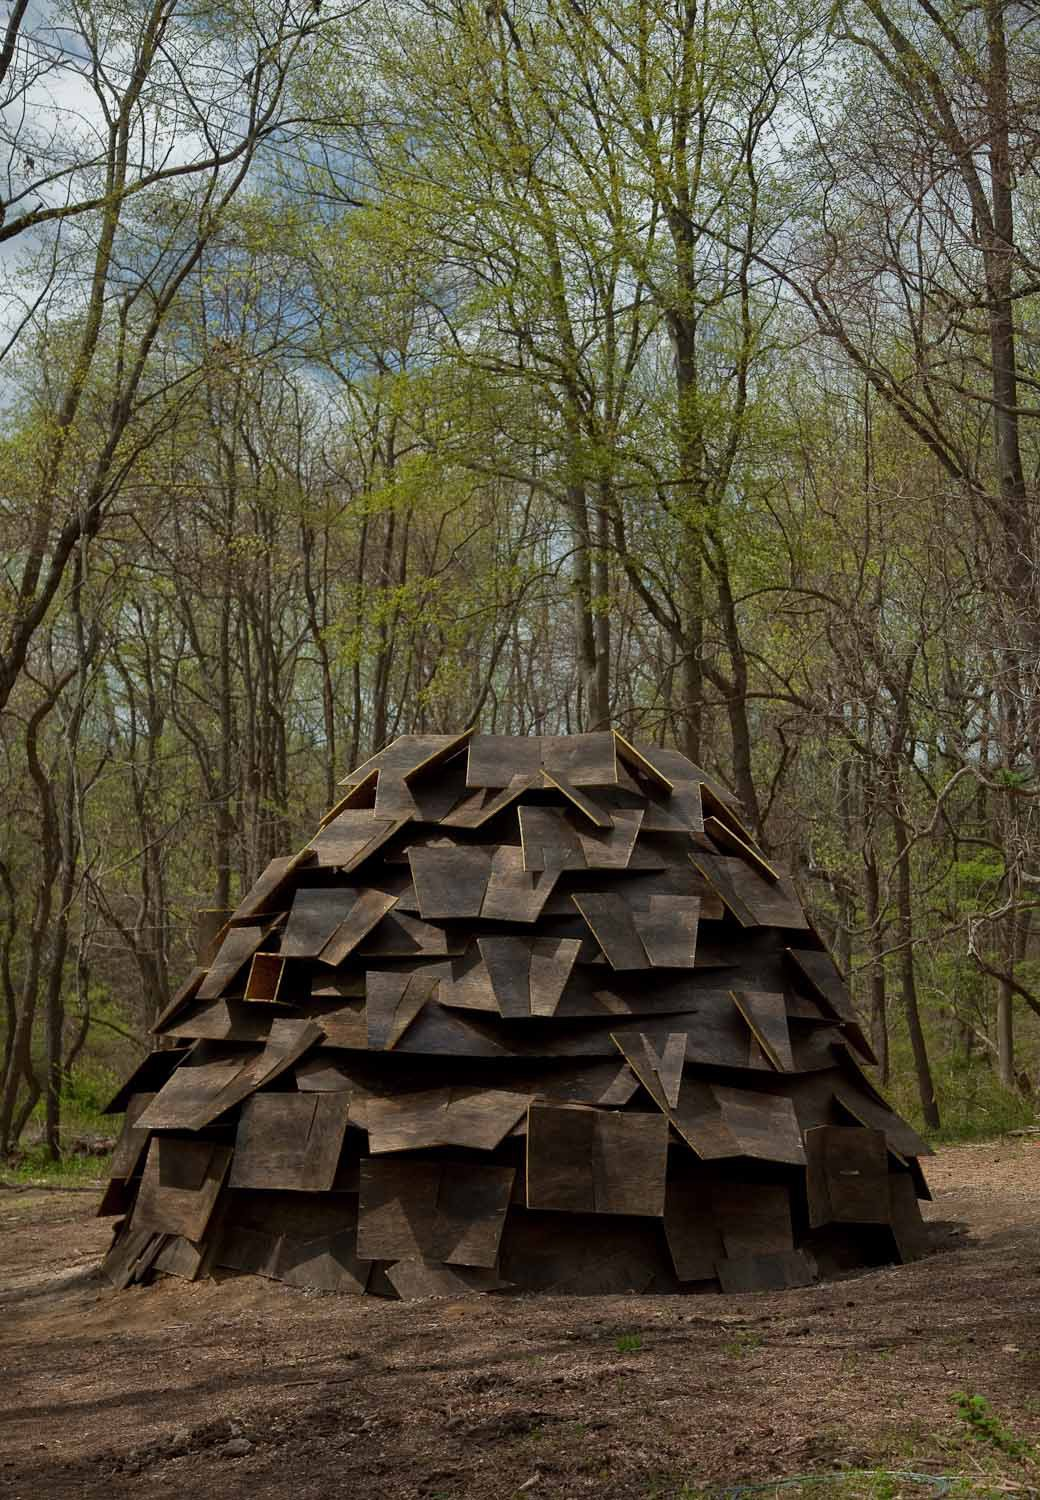 Rain Shelter by GCArchitects, Gabriela Sanz Rodriguez and Carlos Martinez Mediero  Constructed from recycled wood, the rain shelter provides as much solice as entertainment: It becomes a fountain in the rain, a prism of light in the sun, and a whistle in the wind.  Photo by Jack Ramsdale. Courtesy of  the Schuylkill Center for Environmental Education.